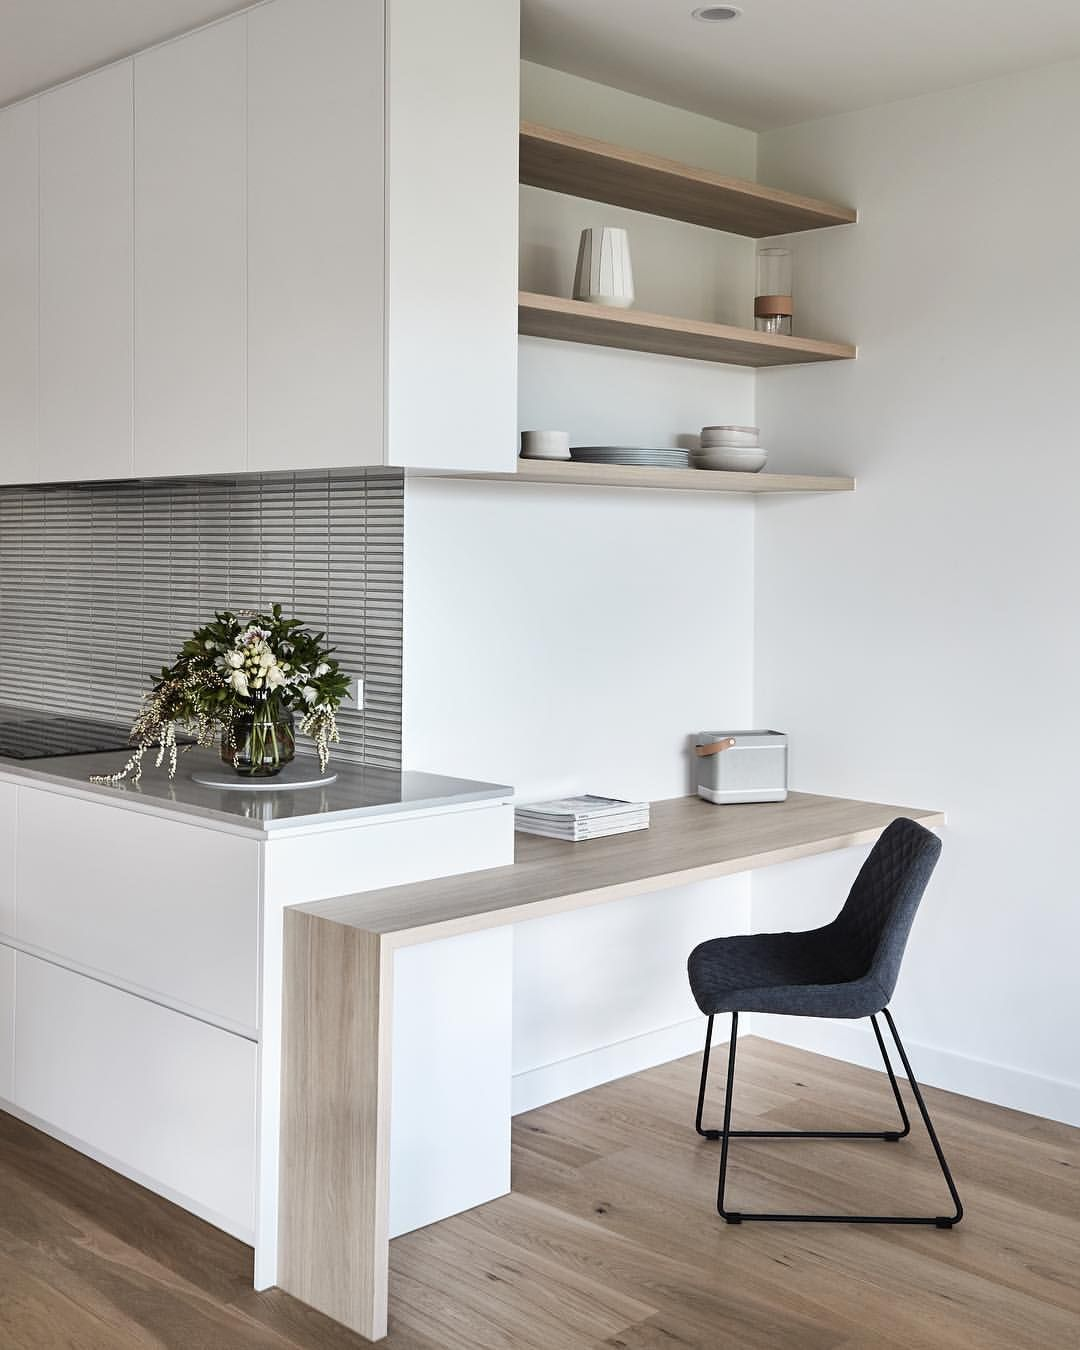 Clever Study Nook Tucked Away On The Side Of This Kitchen How Perfect Is This Thomasarcherhomes In Home Office Design Small Apartment Design Kitchen Design